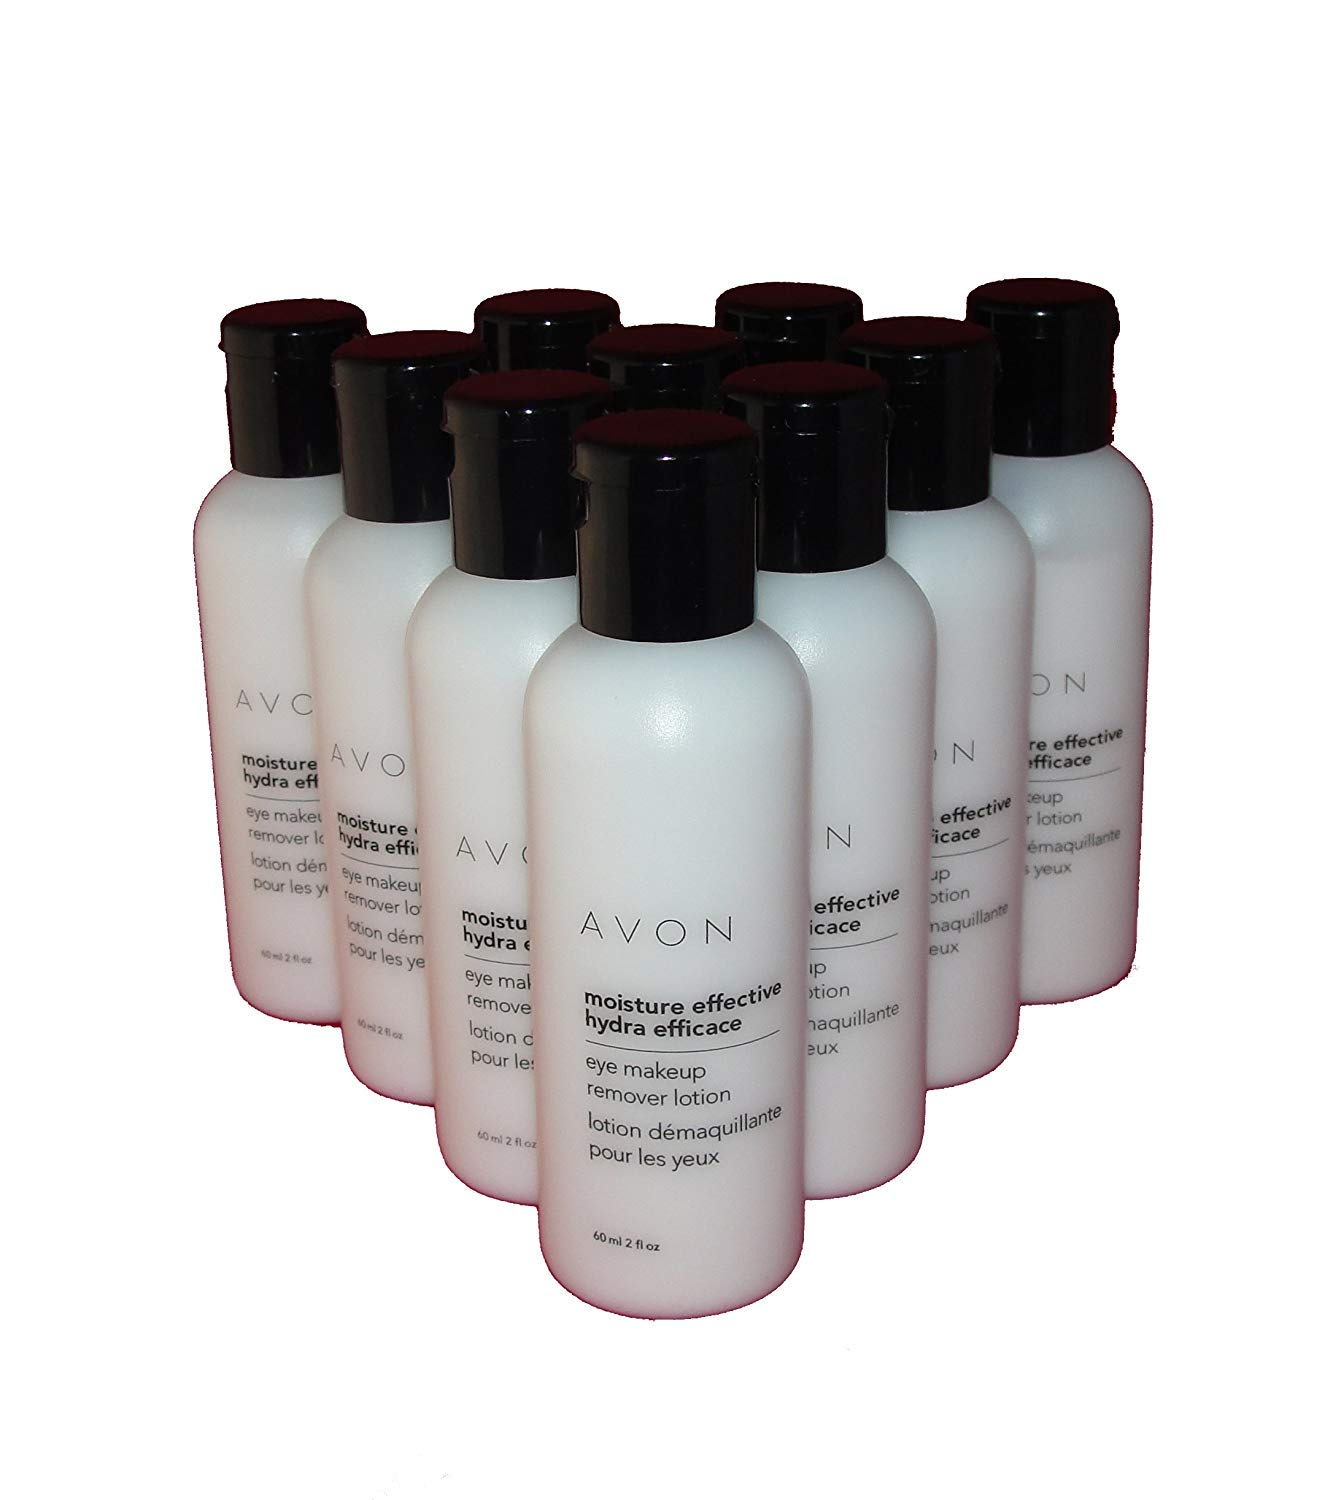 Lot of 10 Avon Moisture Effective Eye Makeup Remover Lotion by Avon